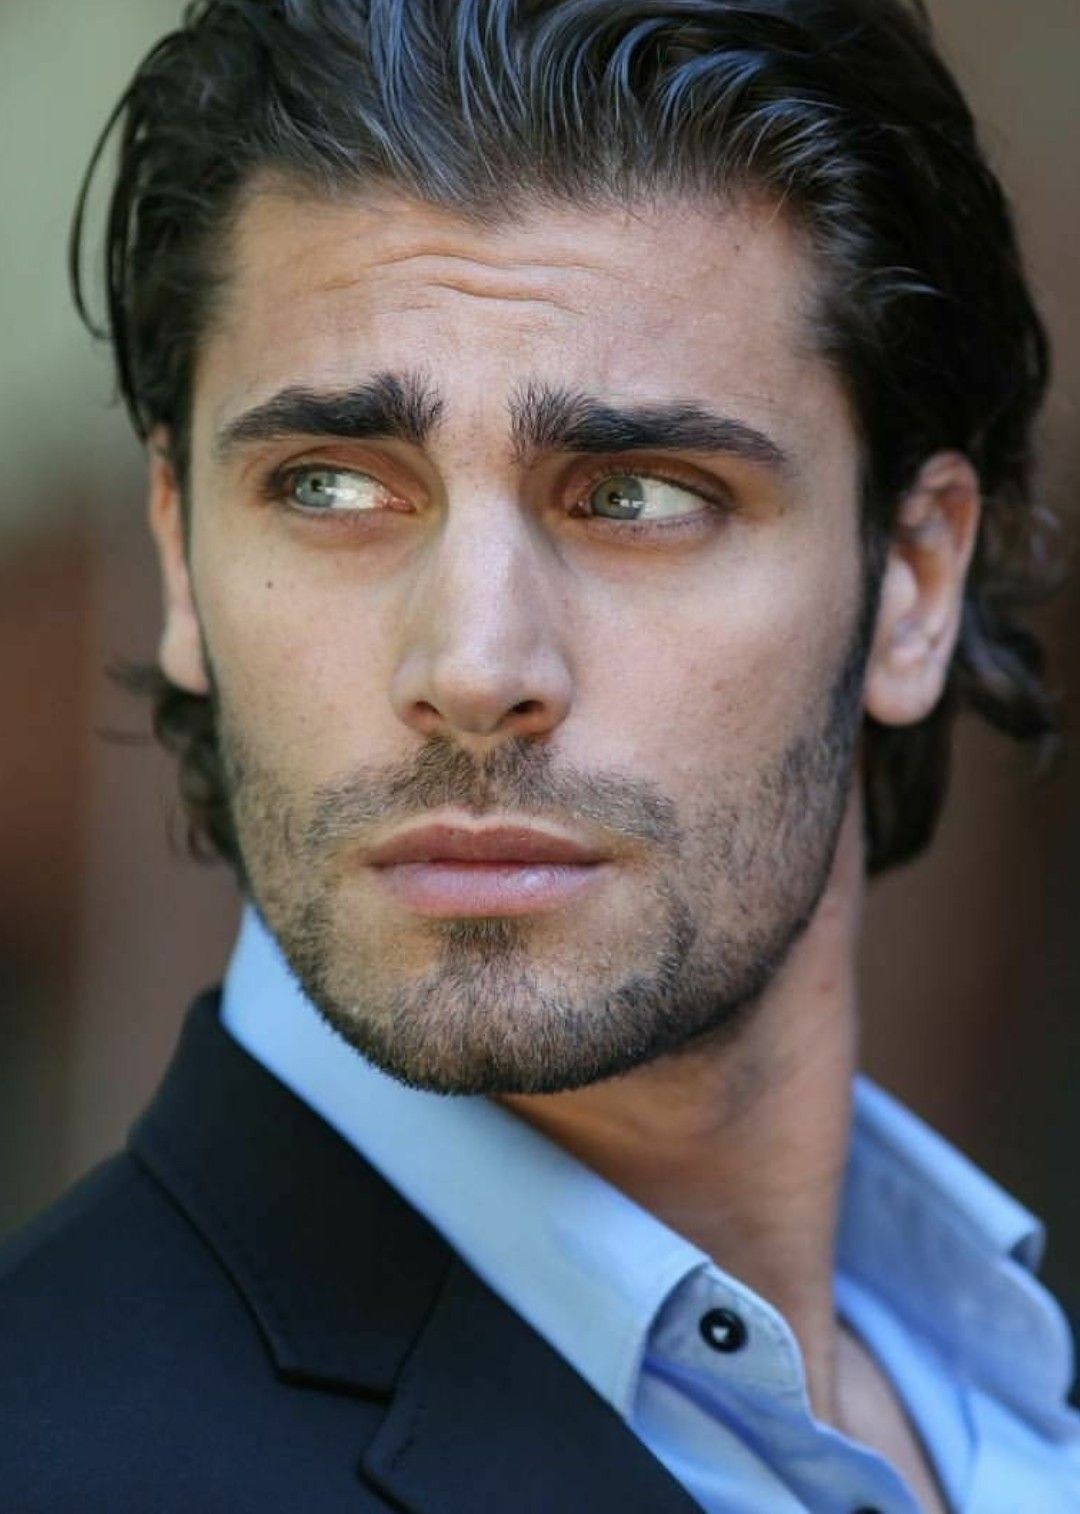 Pin by ~Anna~ on Eye Candy! | Handsome italian men, Best